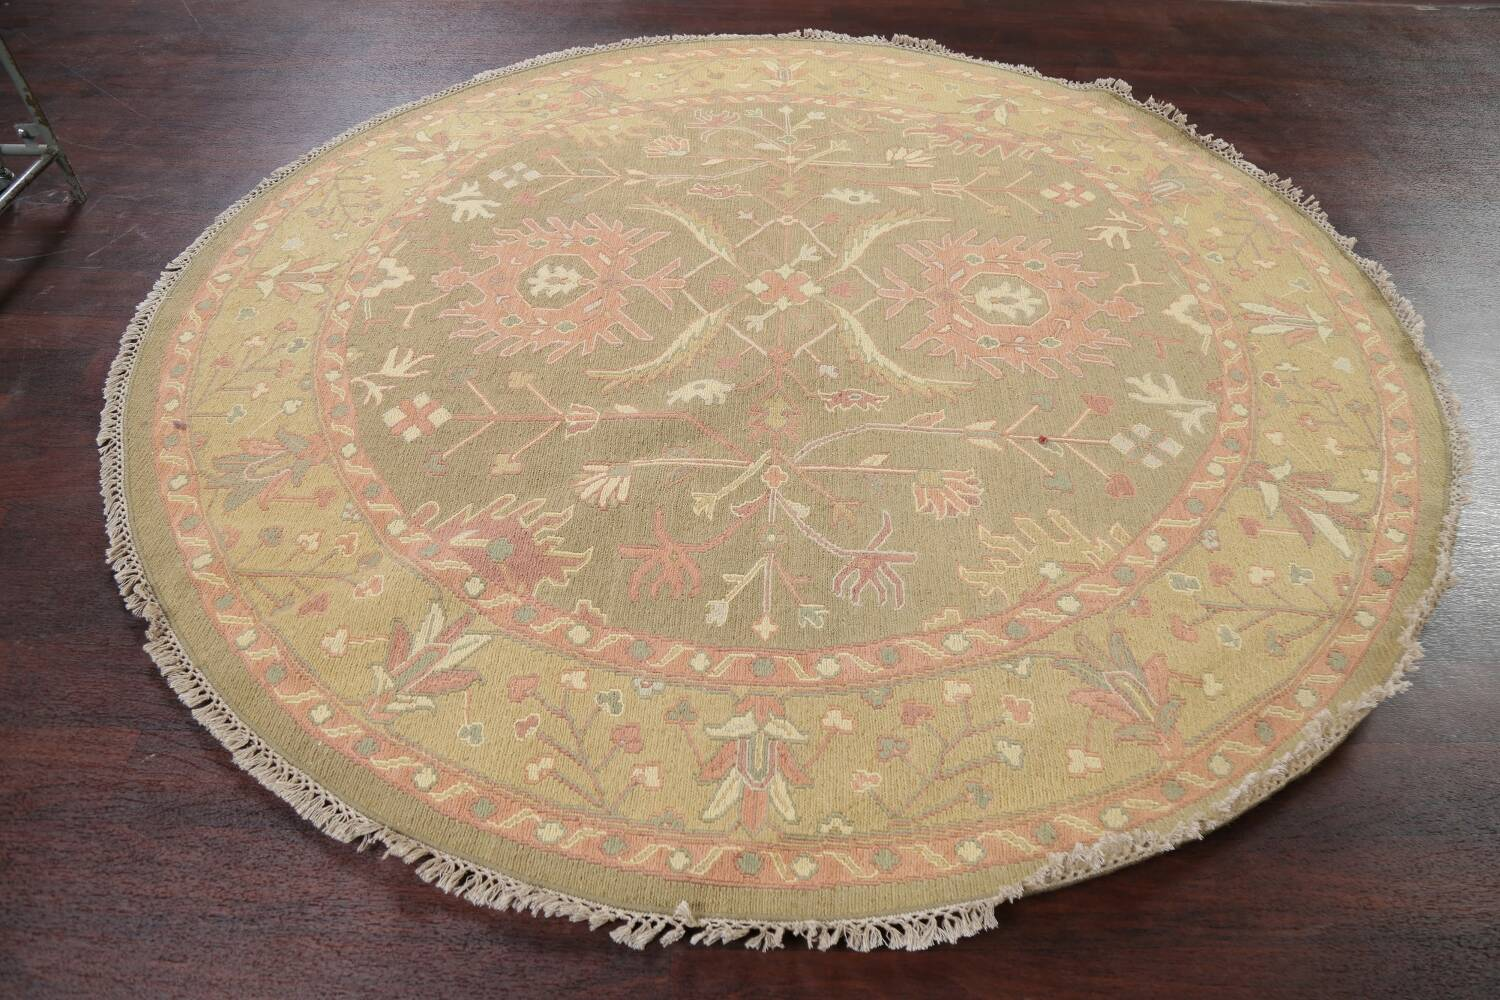 All-Over Green Floral Sumak Oriental Area Rug 8x8 Roud image 12